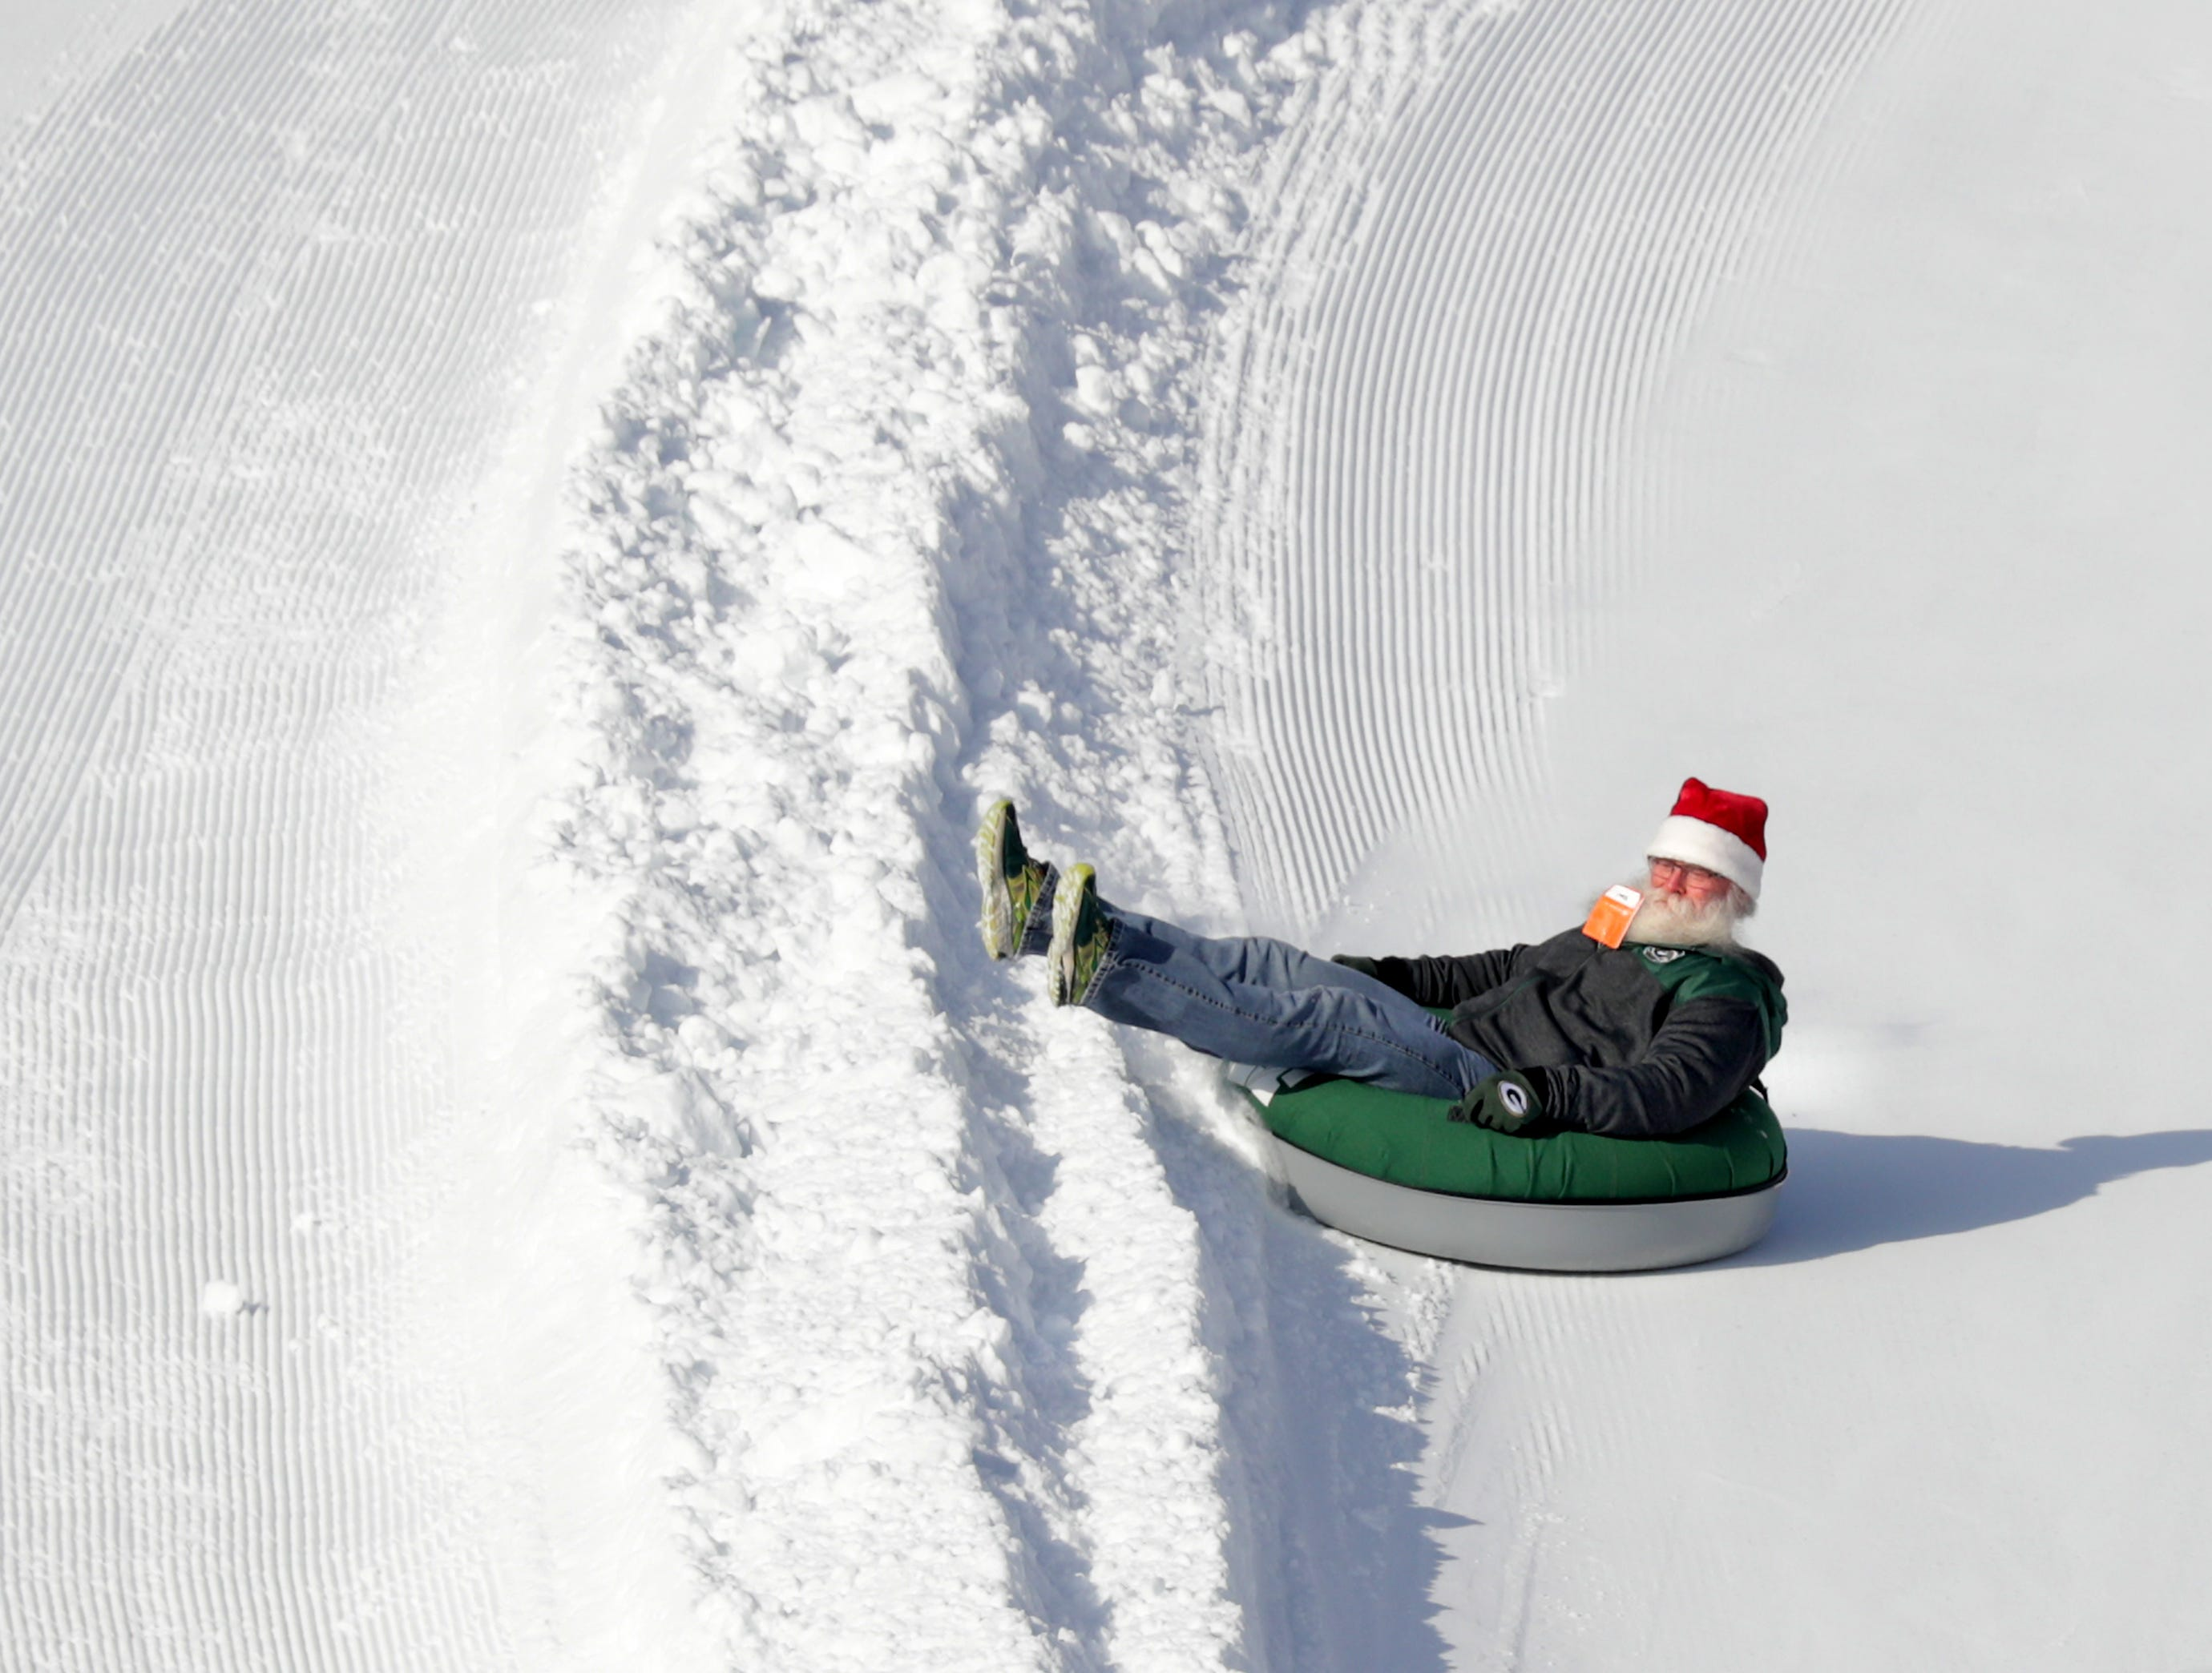 A Packers fan with a resemblance to Santa, slides down a sledding hill in the Titletown District before the Green Bay Packers take on the Atlanta Falcons during their football game on Sunday, December 9, 2018, at Lambeau Field in Green Bay, Wis.